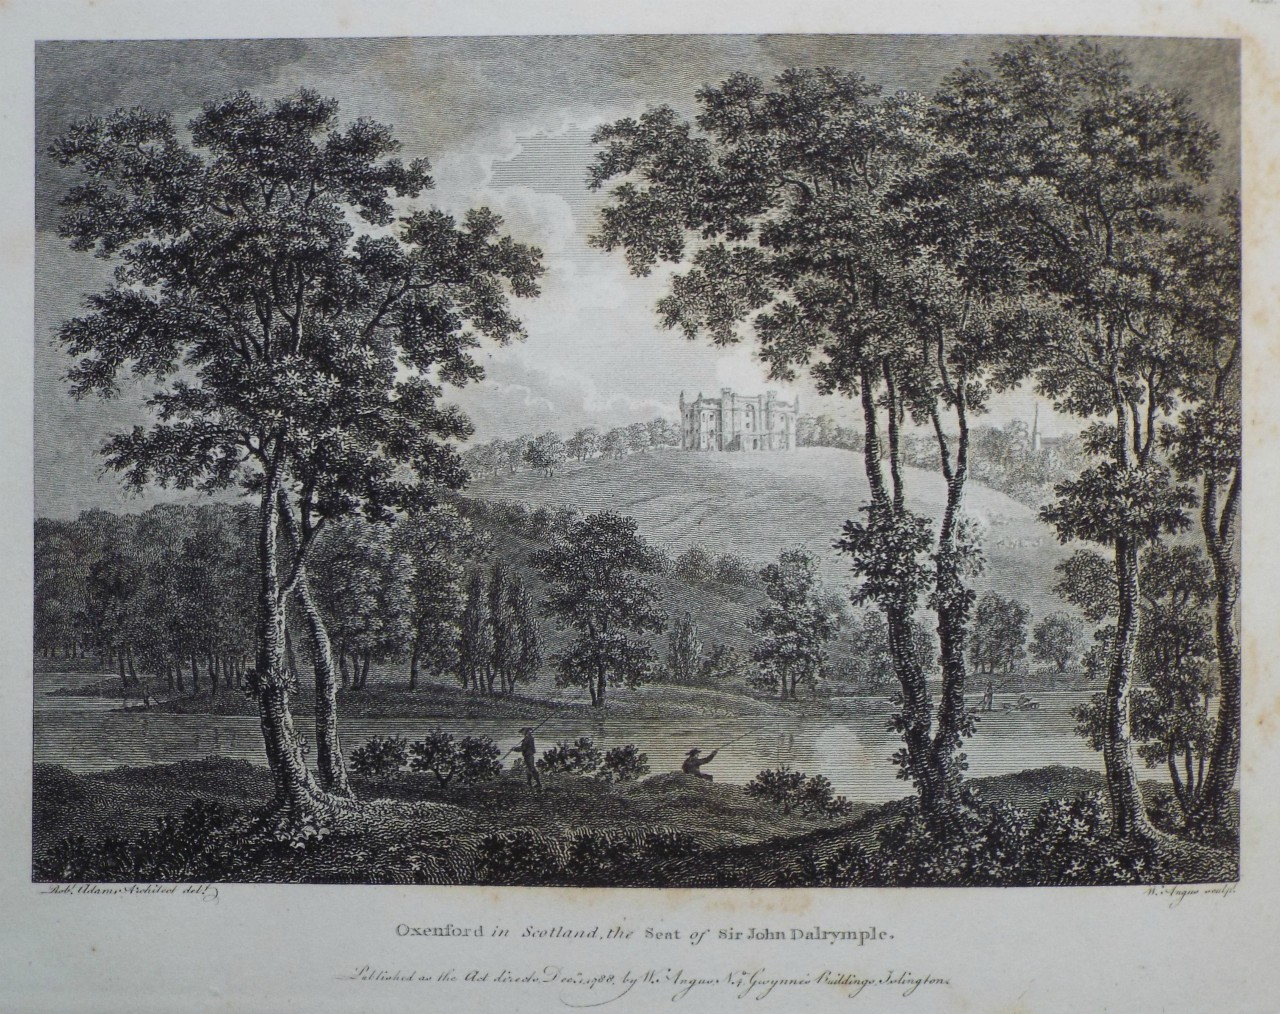 Print - Oxenford in Scotland, the Seat of Sir John Dalrymple. - Angus